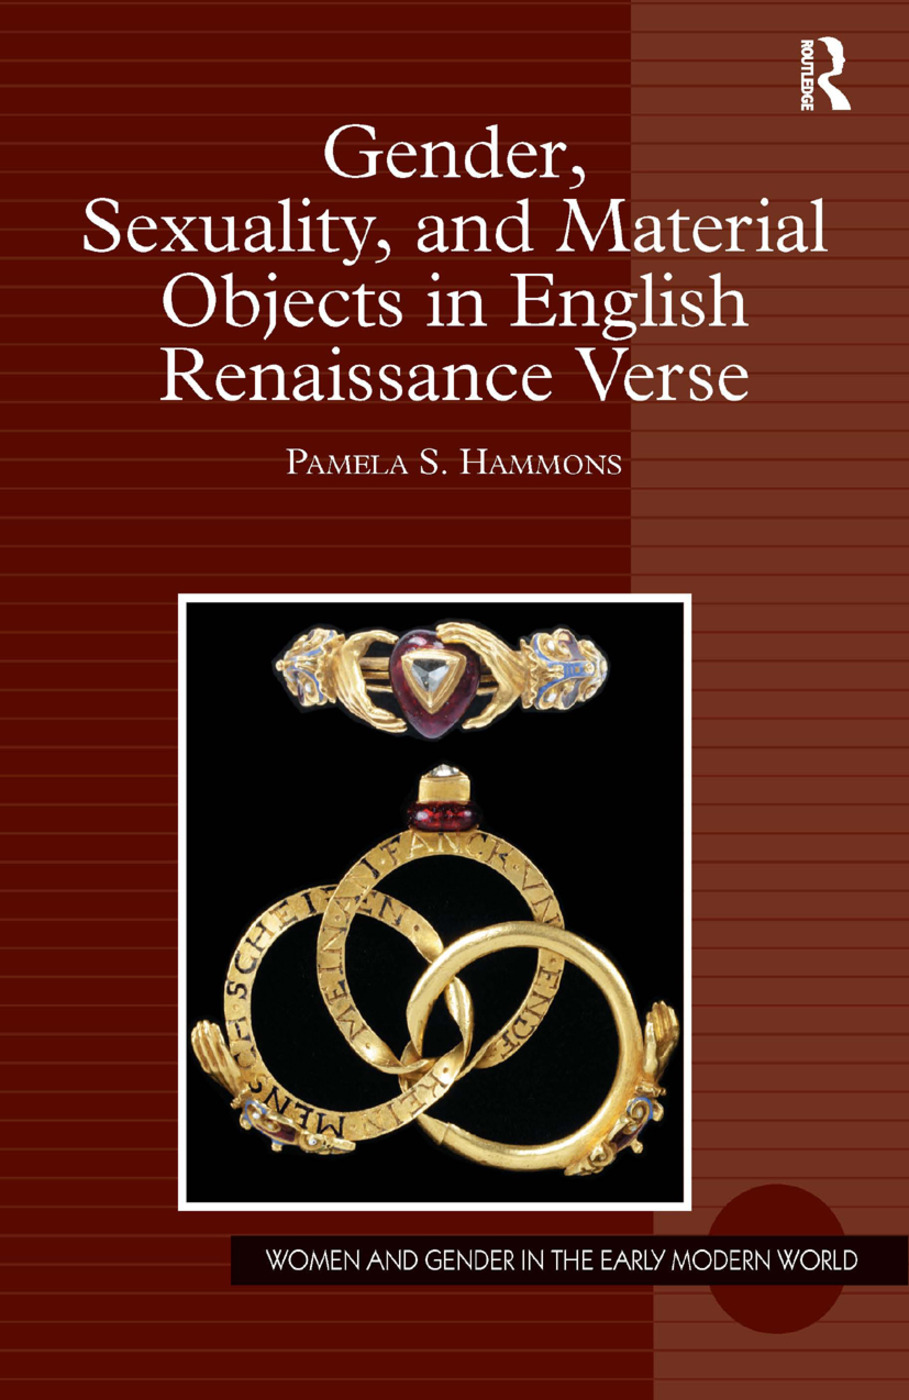 Gender, Sexuality, and Material Objects in English Renaissance Verse book cover